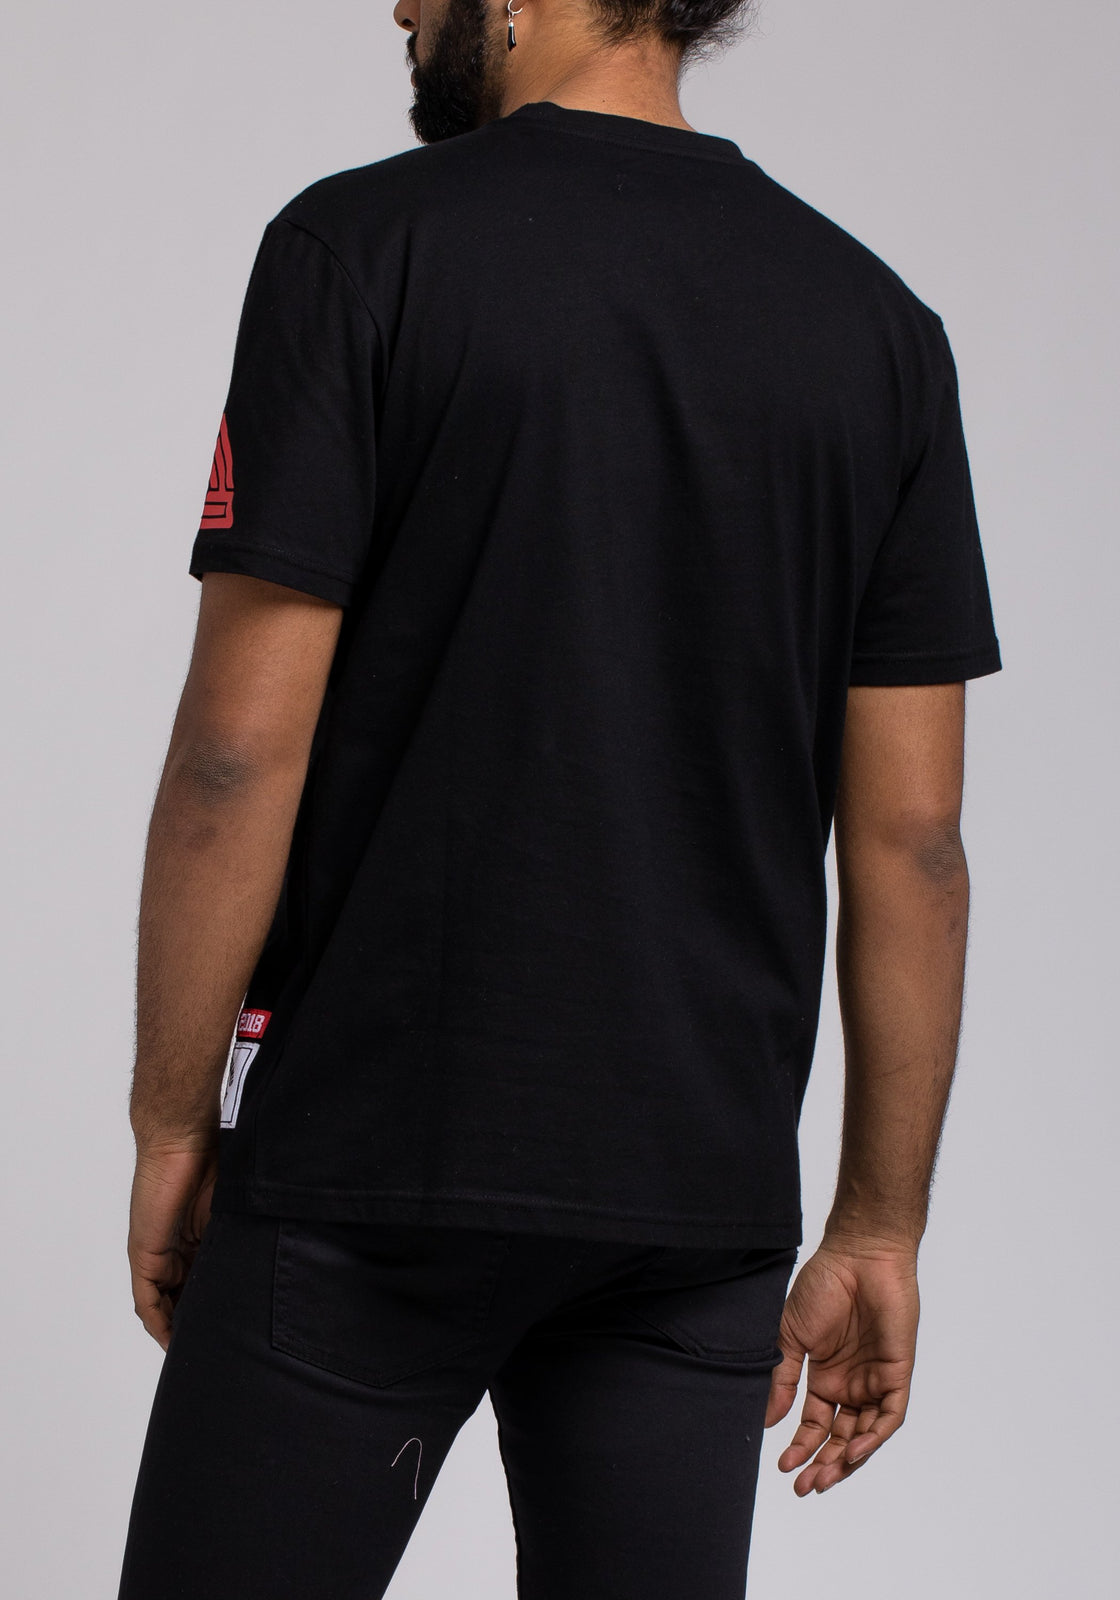 Black Pyramid SS Shirt - Color: Black